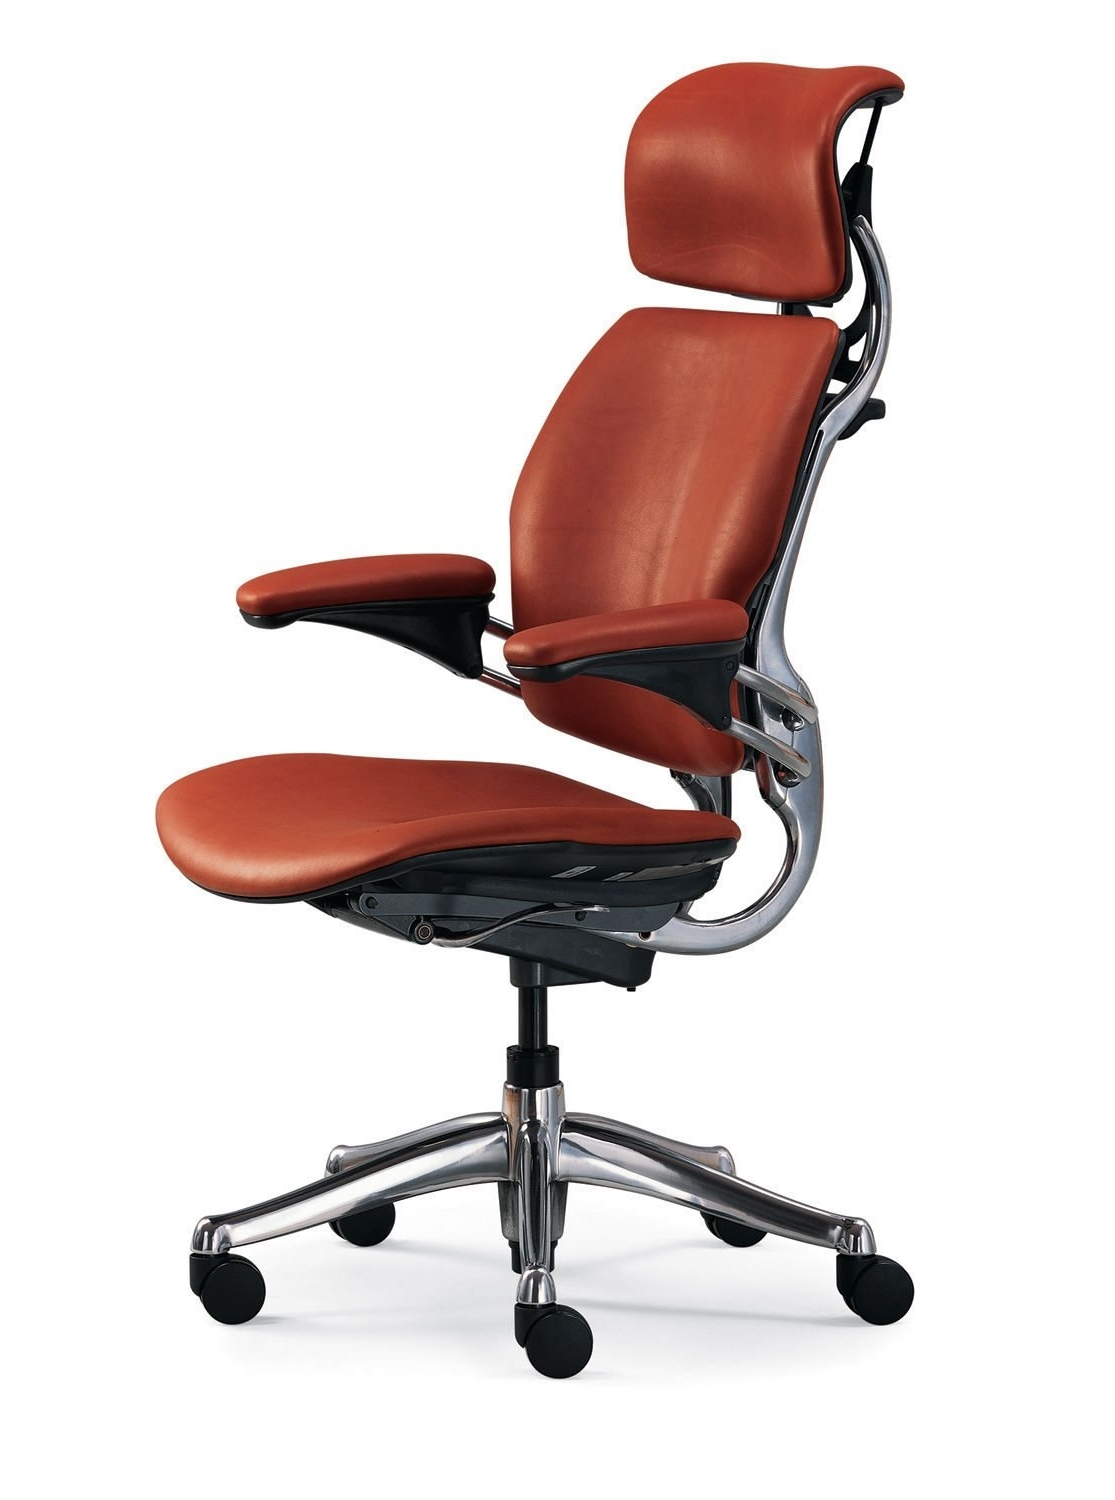 Fashionable Best Office Chair With Headrest • Office Chairs Intended For Executive Office Chairs With Headrest (View 4 of 20)